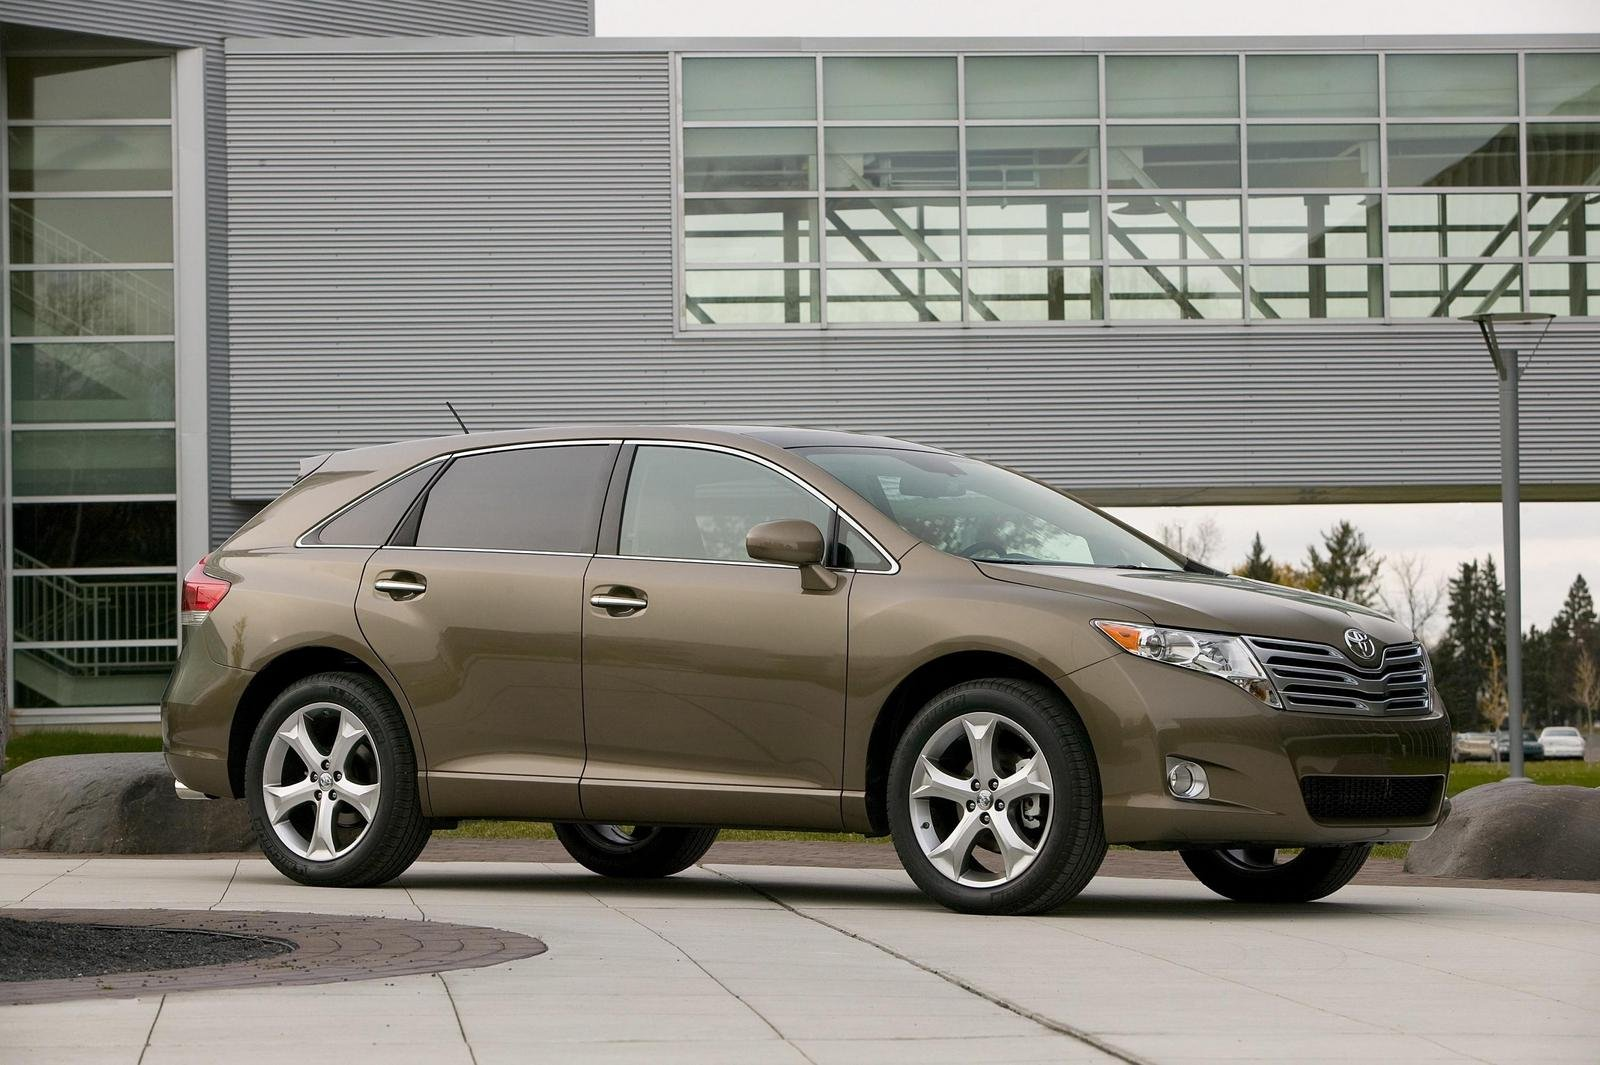 2009 toyota venza picture 225809 car review top speed. Black Bedroom Furniture Sets. Home Design Ideas